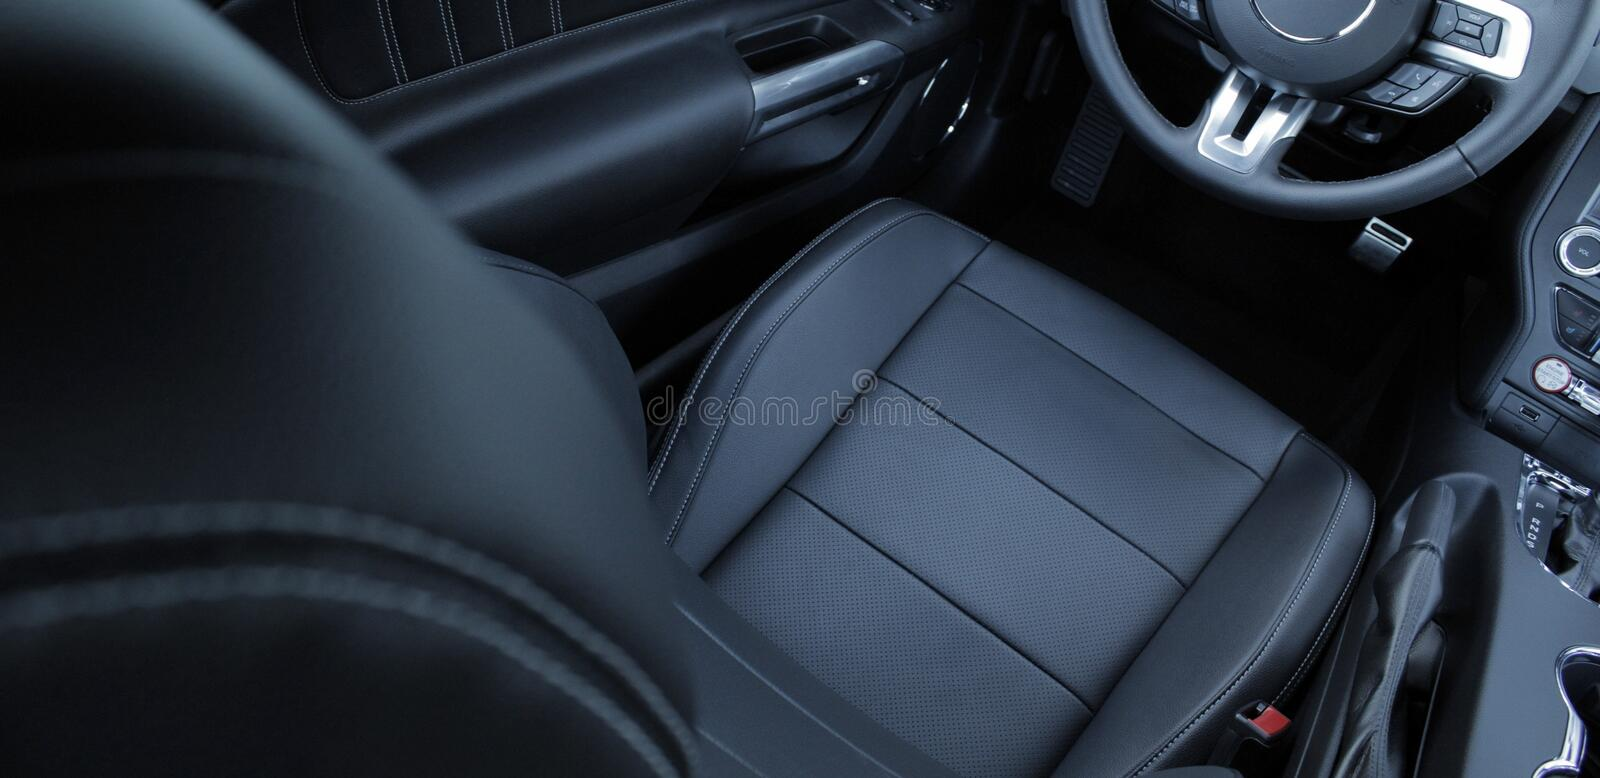 black leather and chrome parts in car interior stock image image 70098609. Black Bedroom Furniture Sets. Home Design Ideas